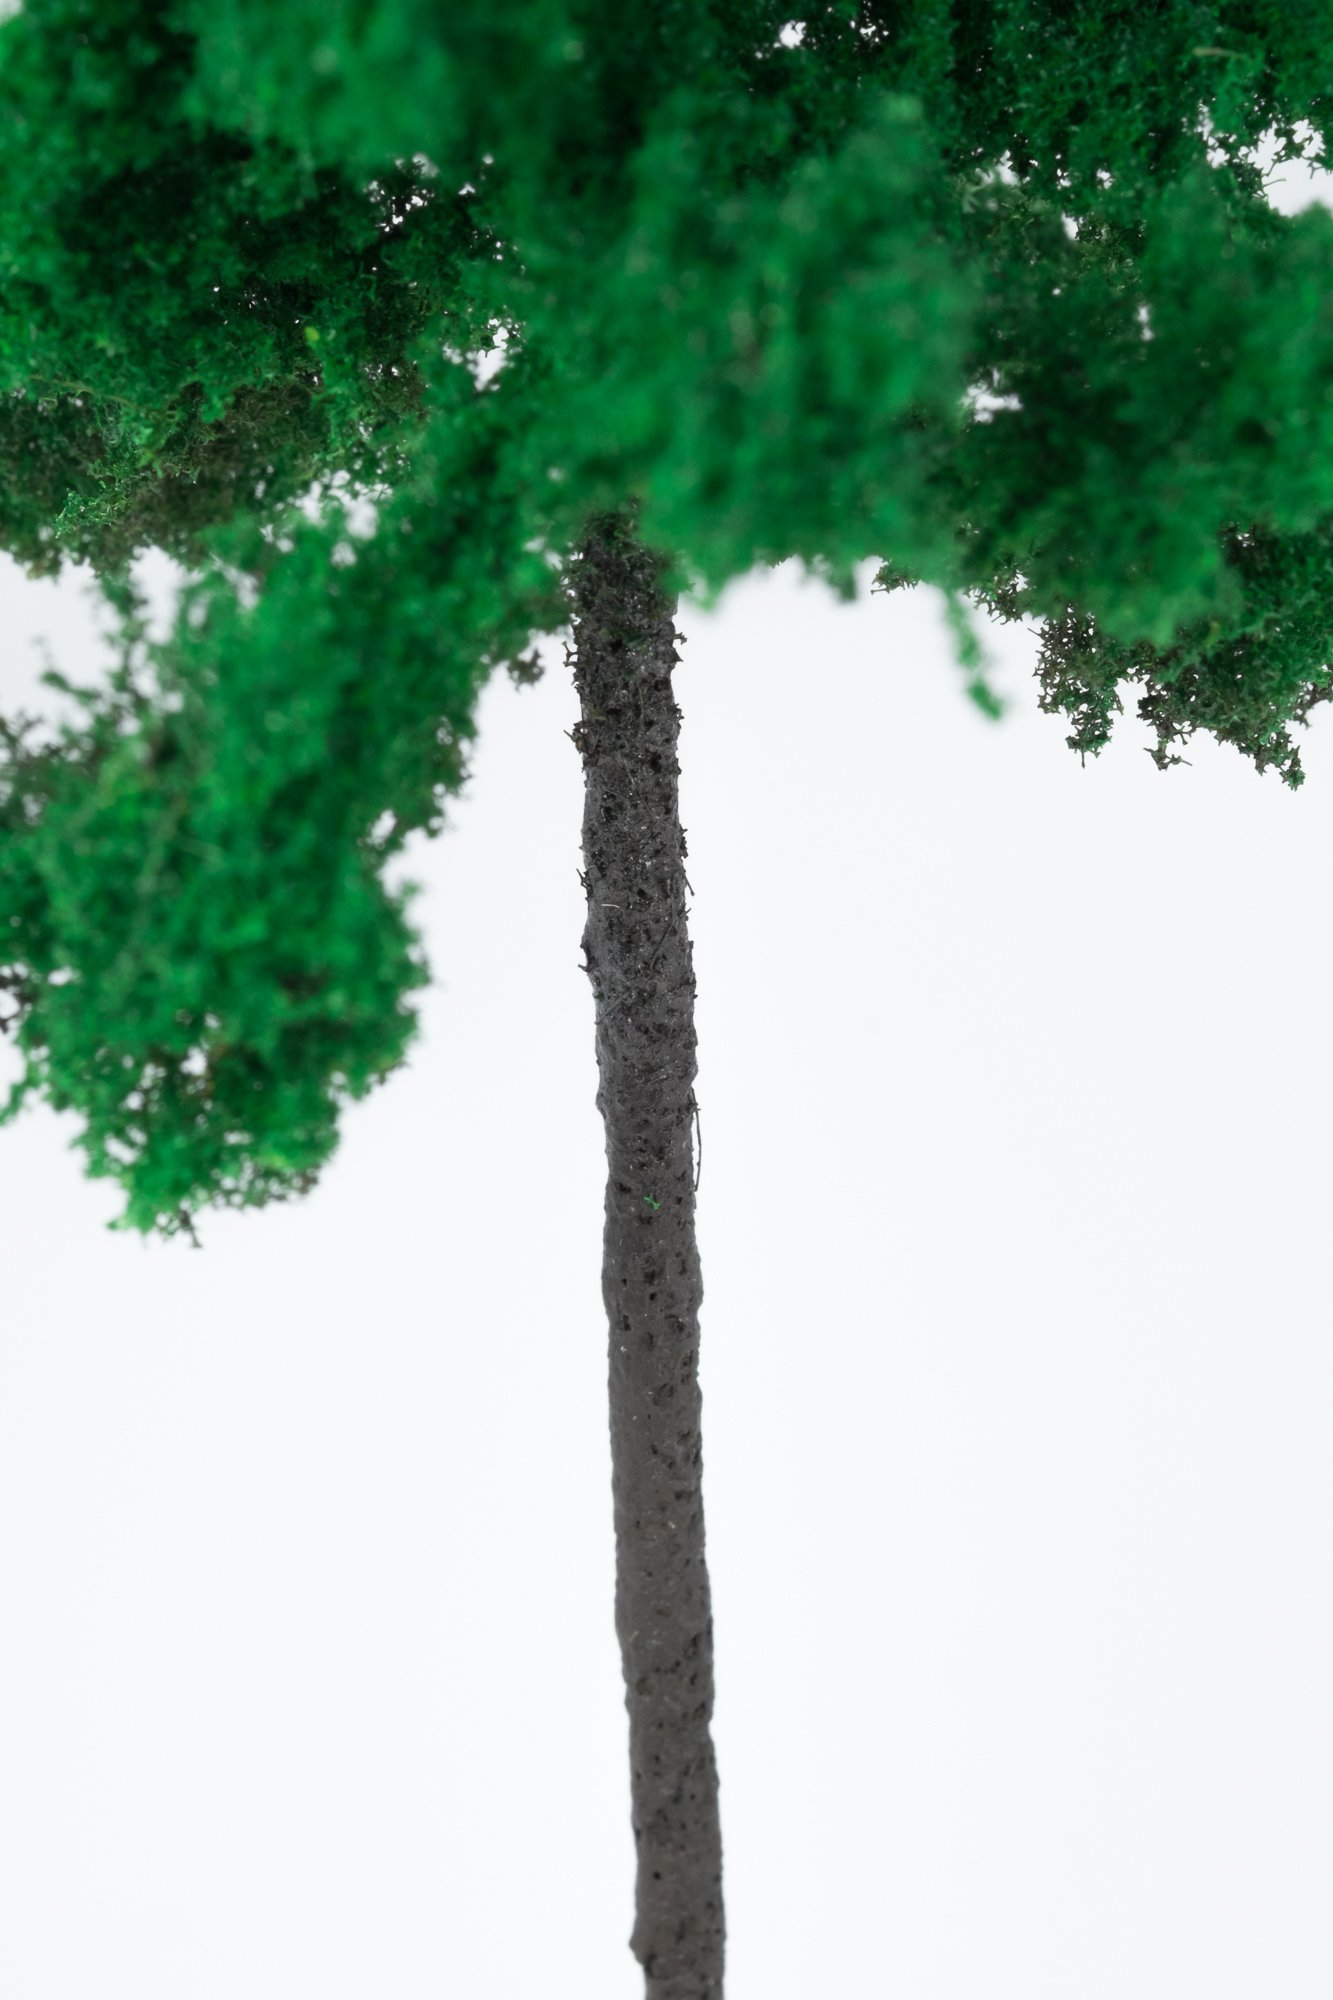 Closeup of smallest forest spruce tree model. Made from high quality model supplies by Primo Models.